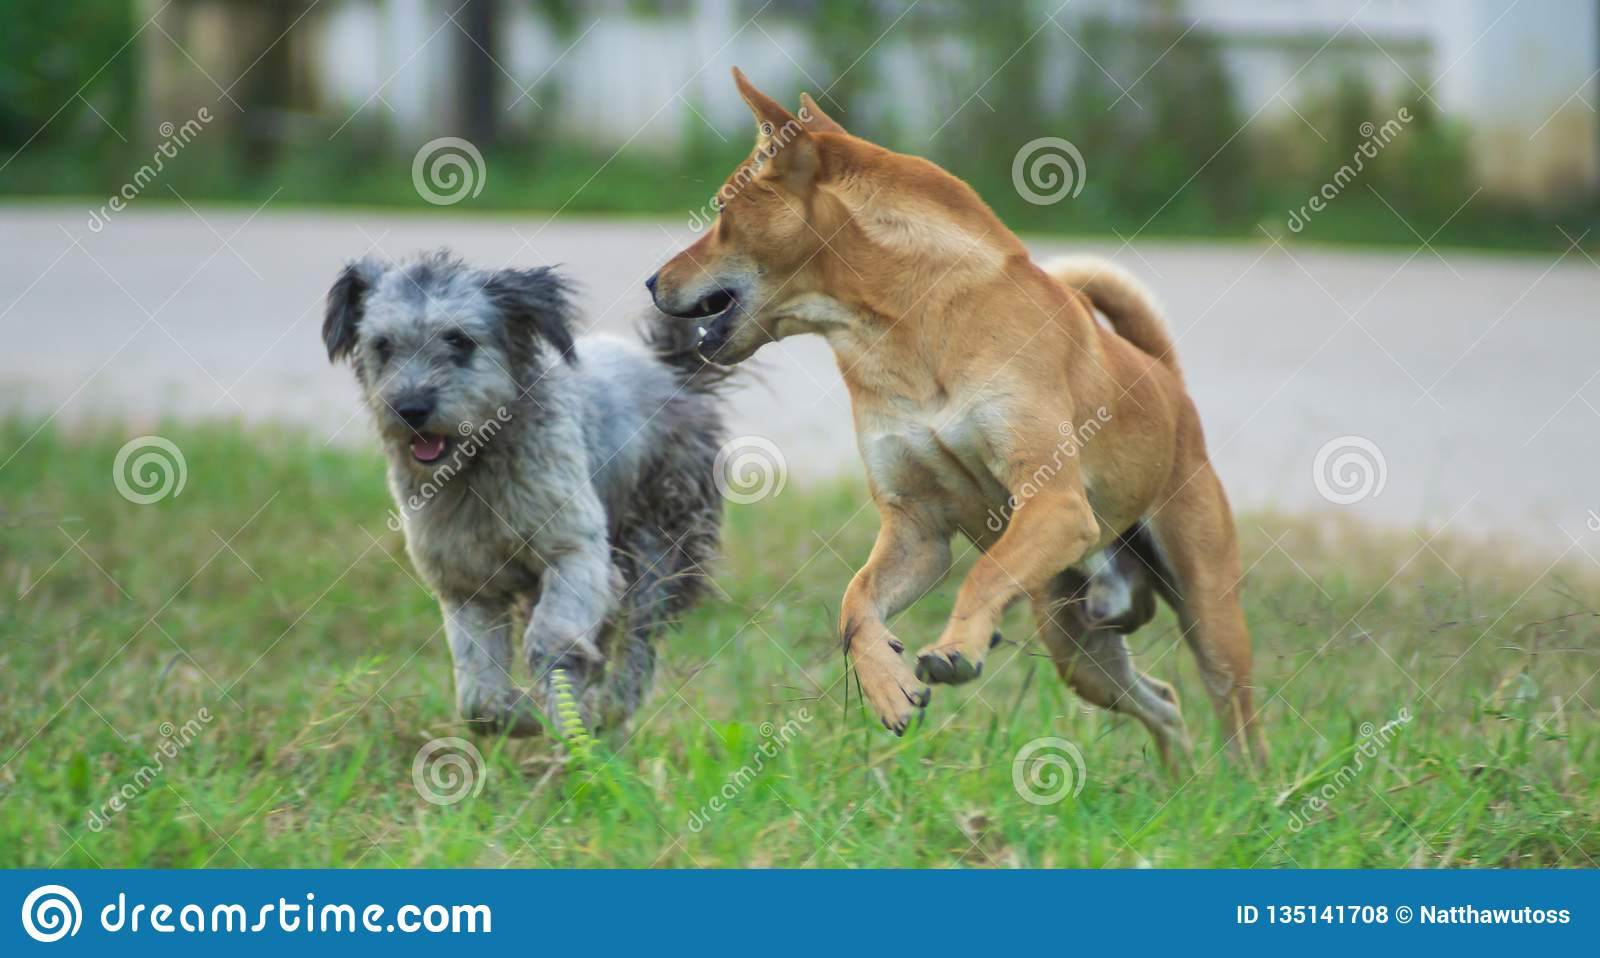 Two dogs are running on the grass